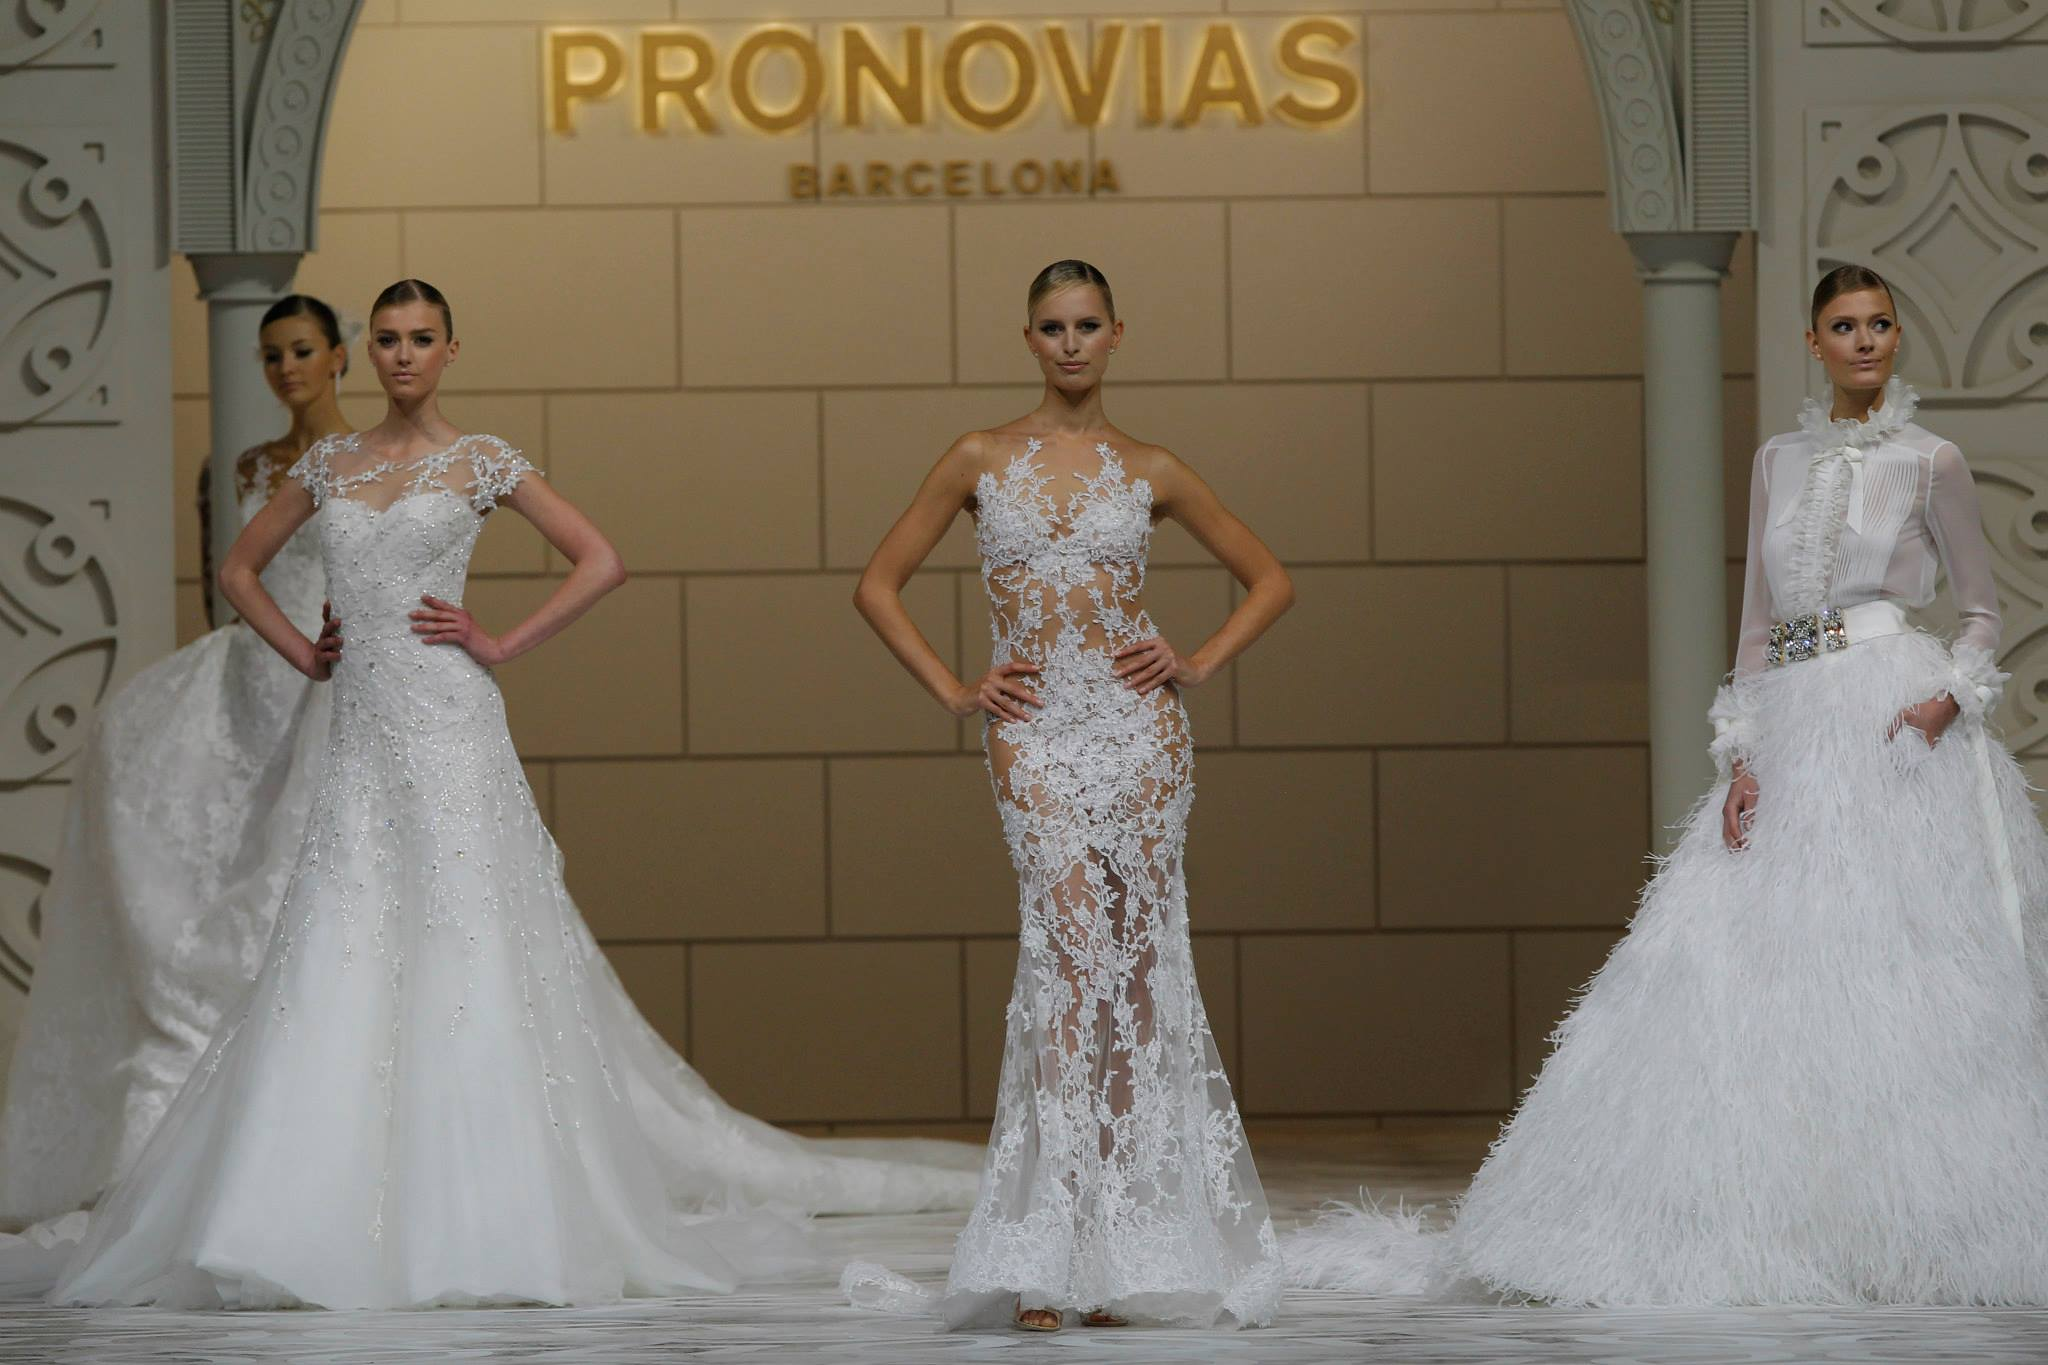 Pronovias 2015 fashion show - 50th Anniversary - Elope in Paris